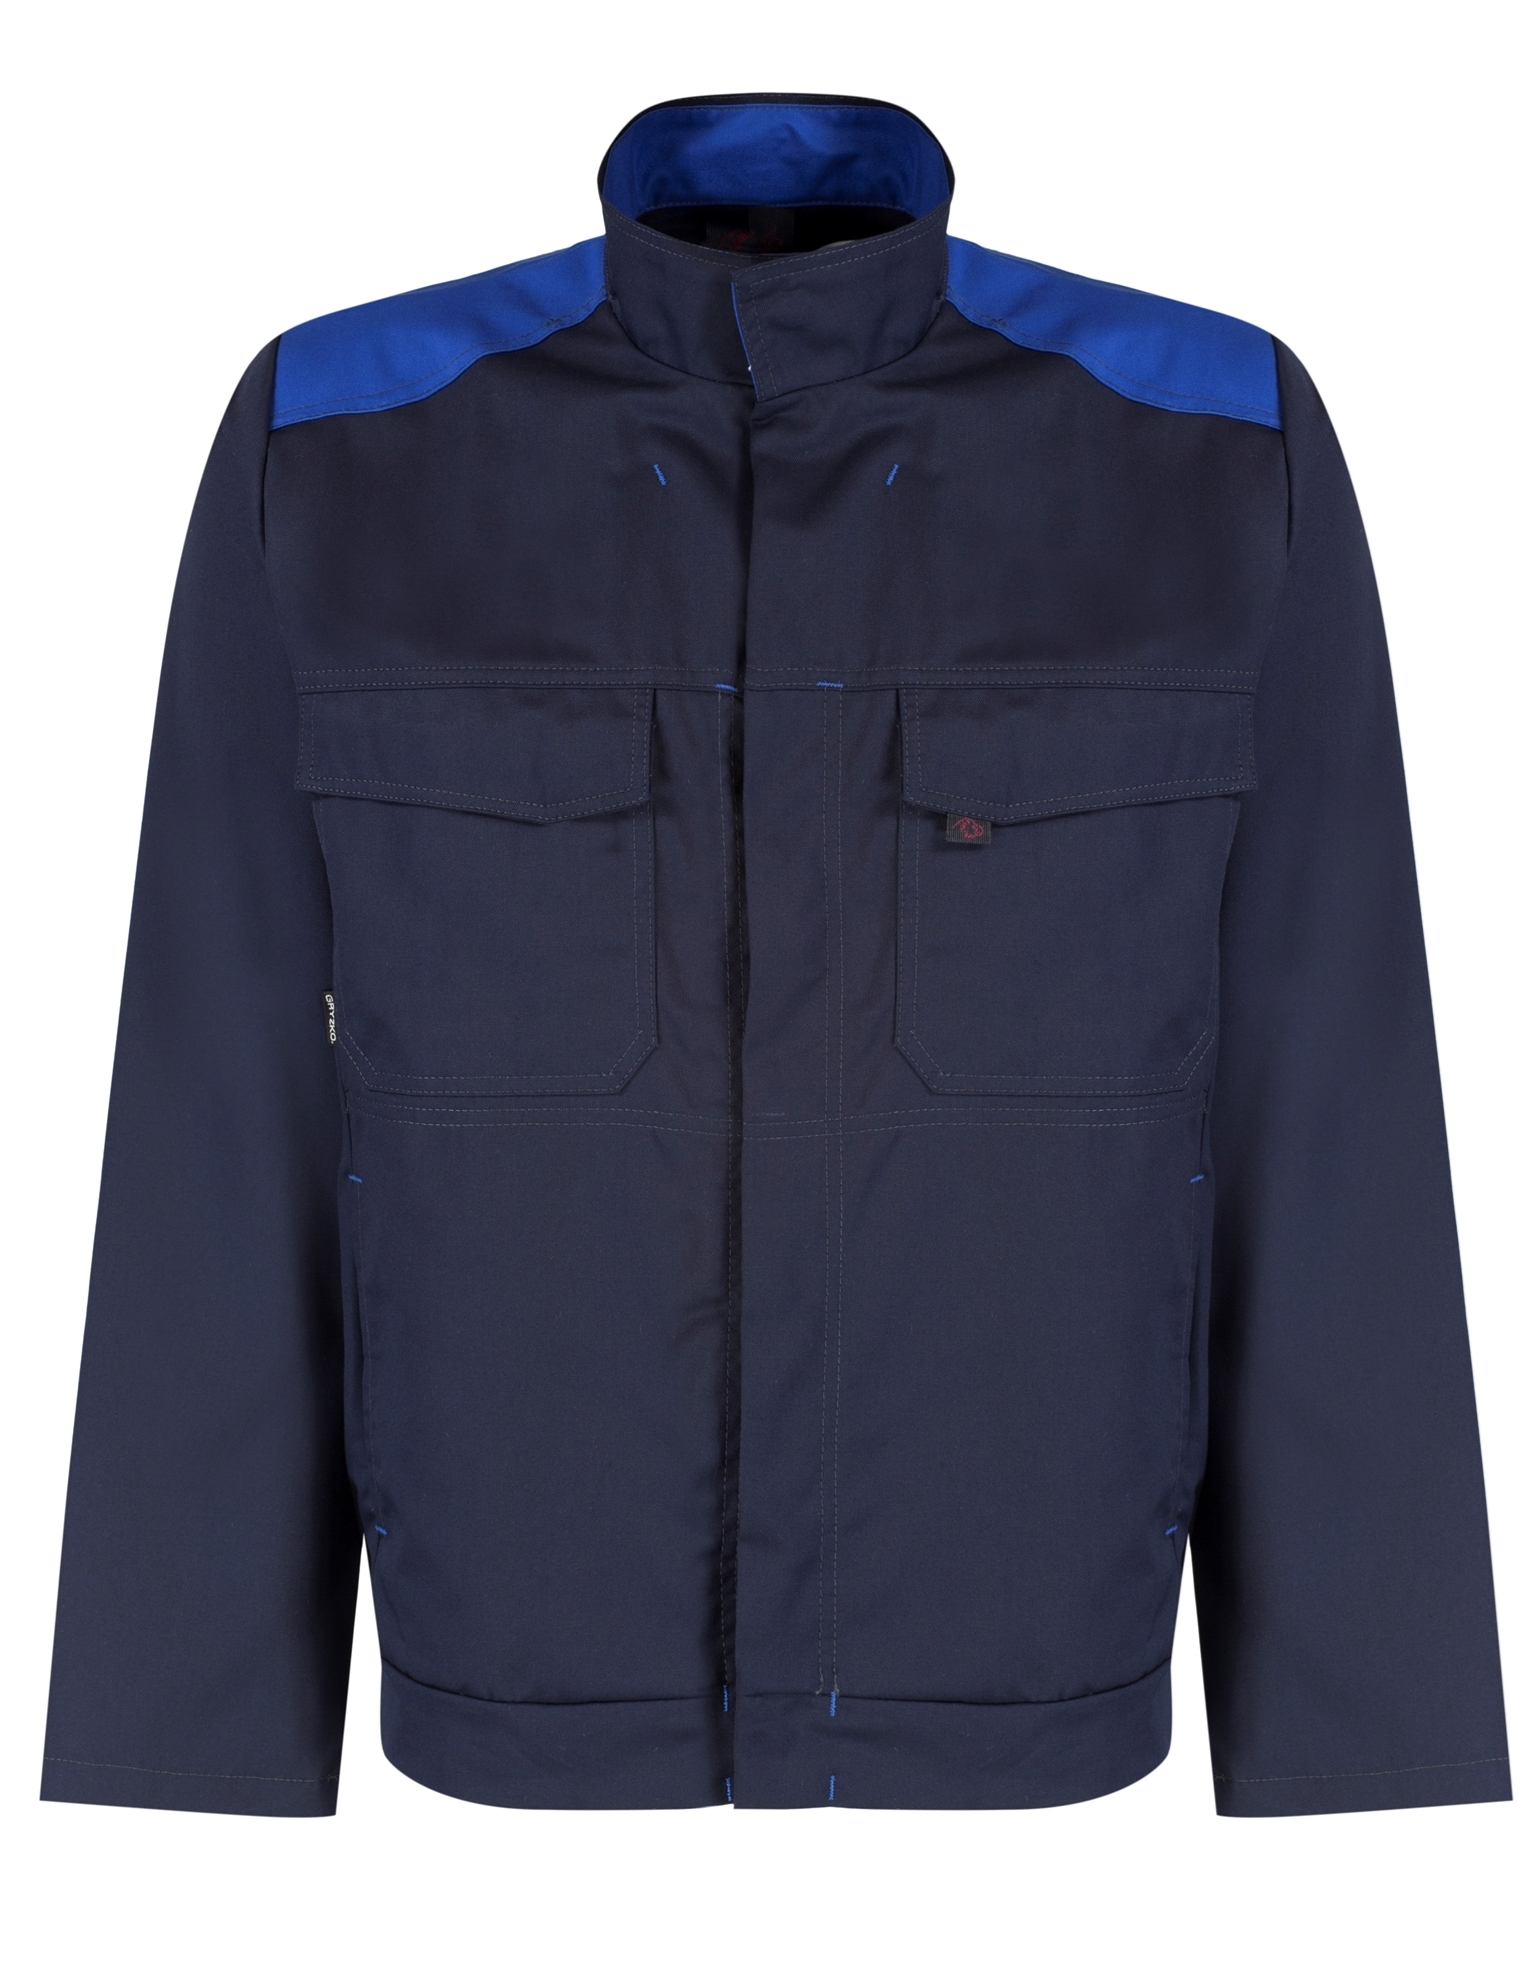 Picture of Gryzko Bi Colour Jacket - Navy/Royal Blue